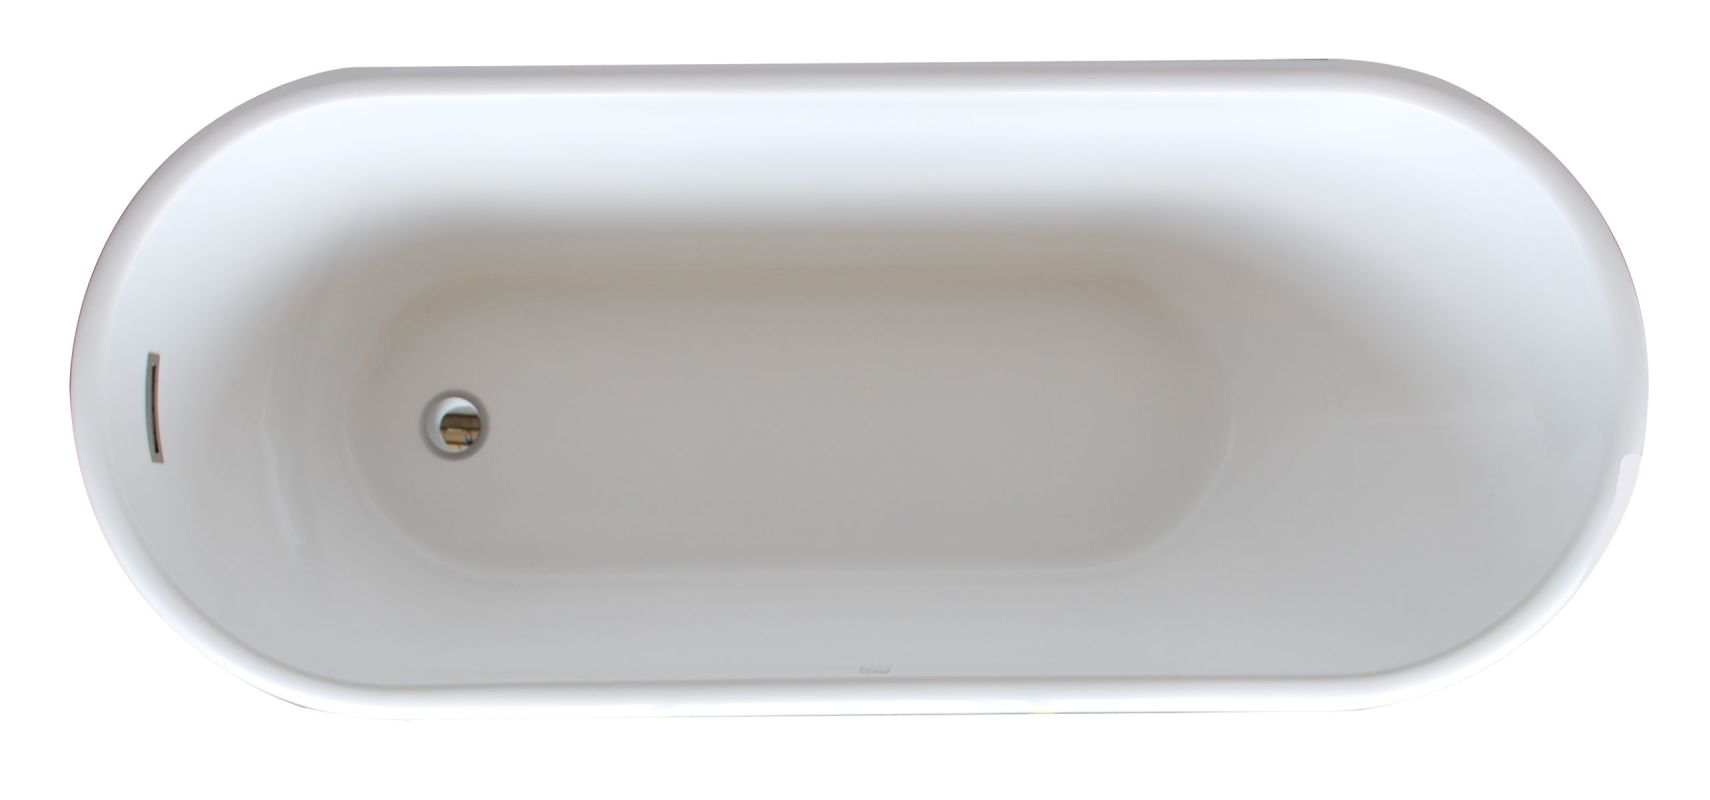 Av6728ensxcwxx in white by avano for Best freestanding tub material